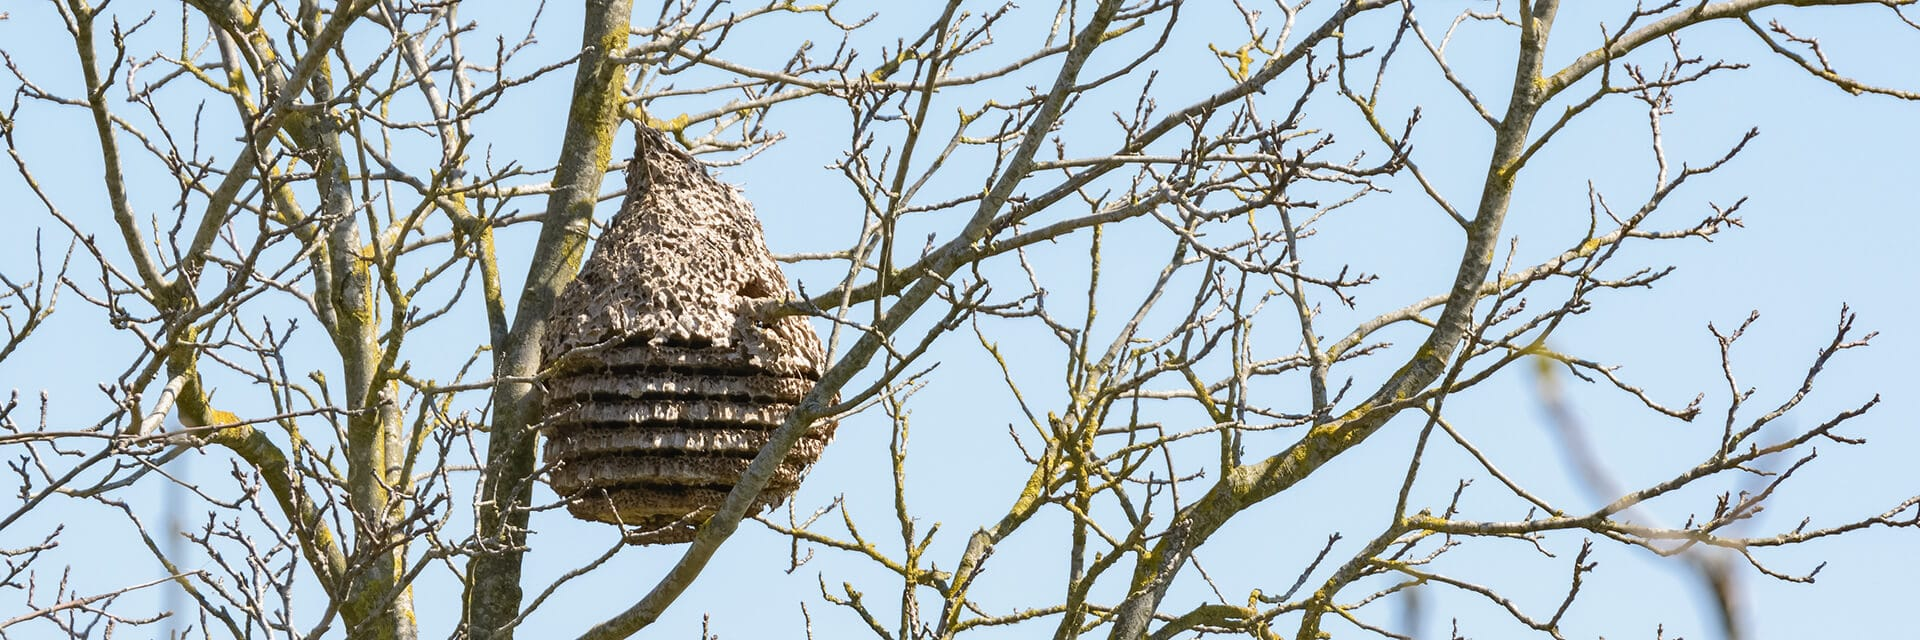 Wasp nest at forest in the spring